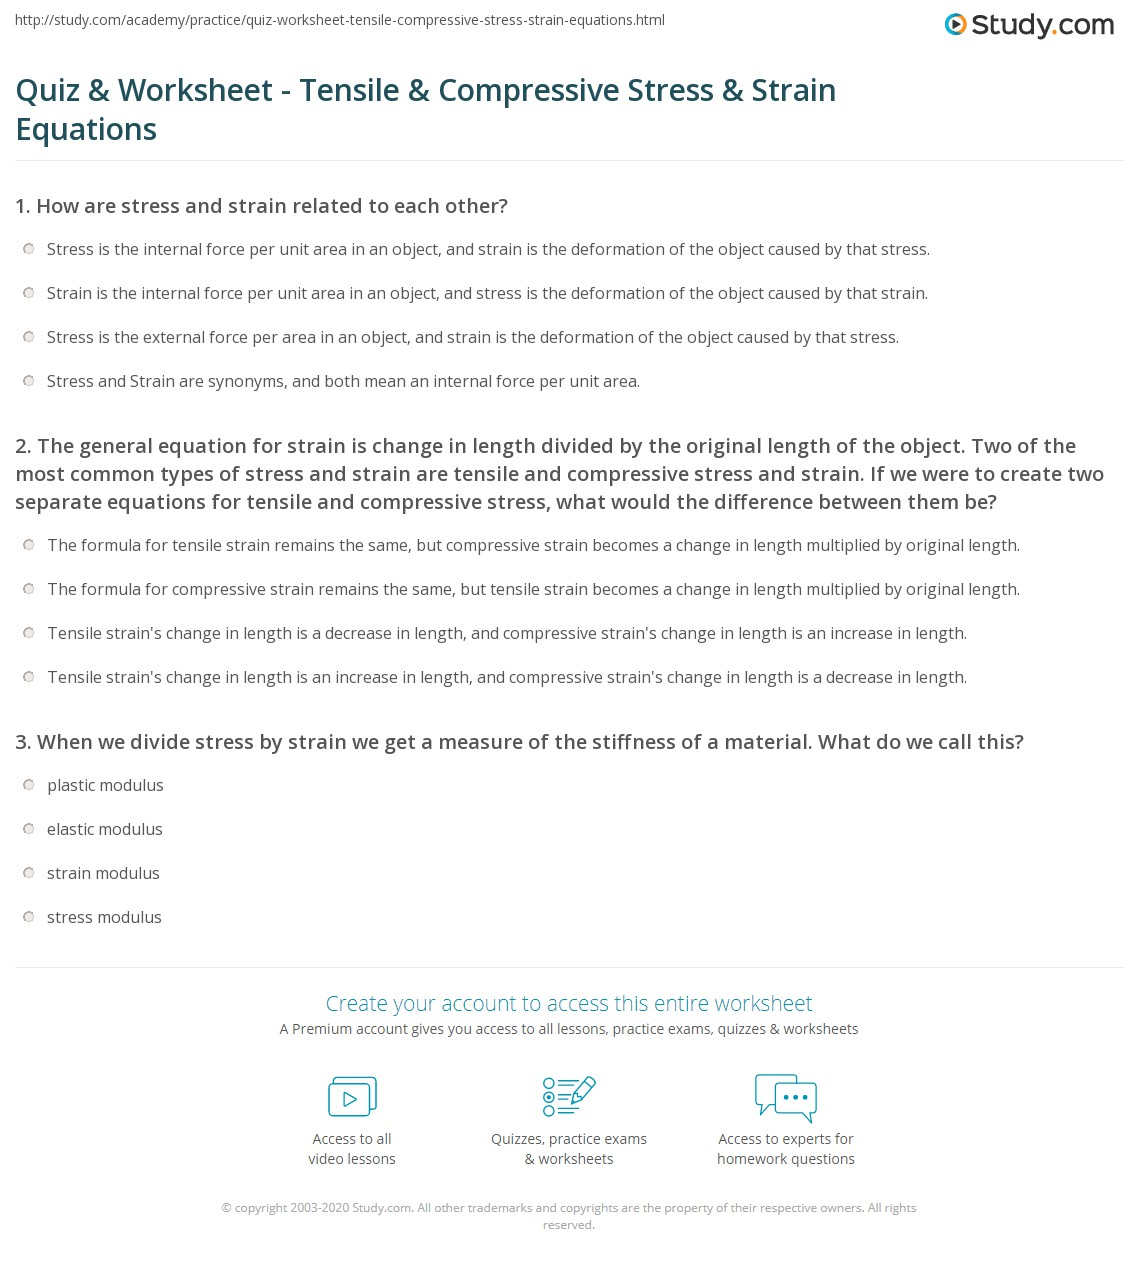 picture about Stress Quiz Printable named Quiz Worksheet - Tensile Compressive Strain Stress